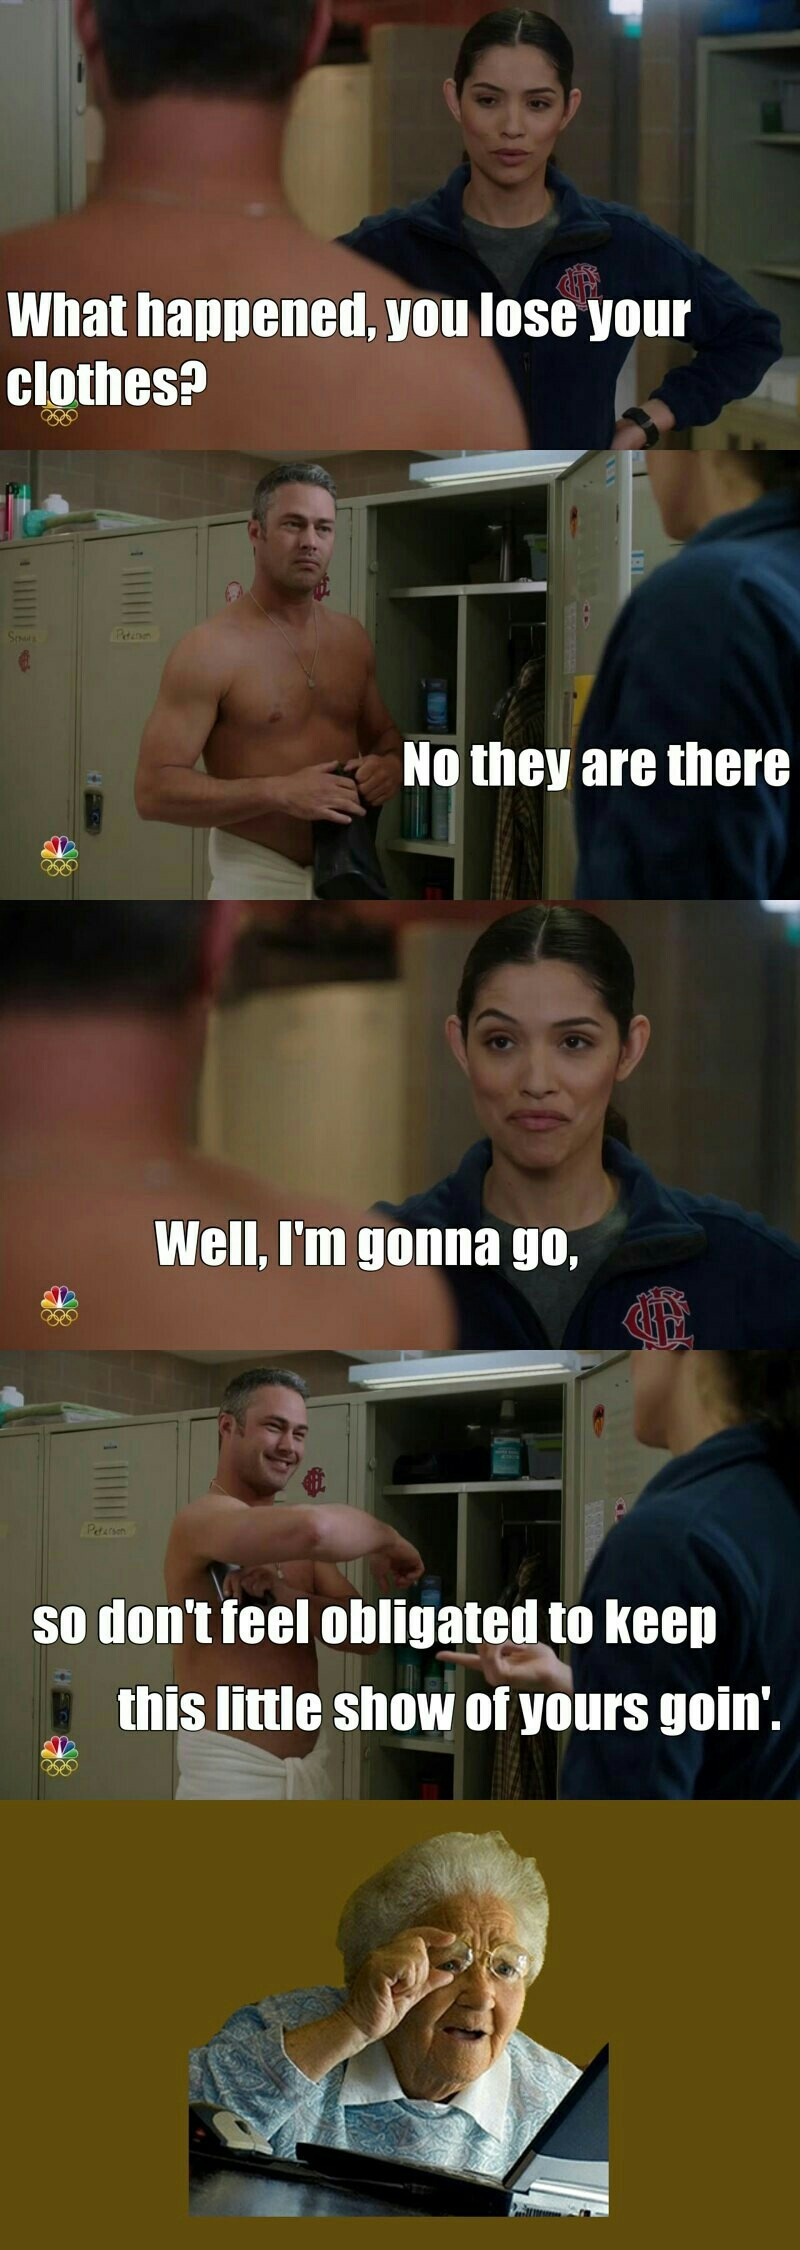 I loooved this scene and their chemistry! This could be such a fun a relationship for Severide for once!